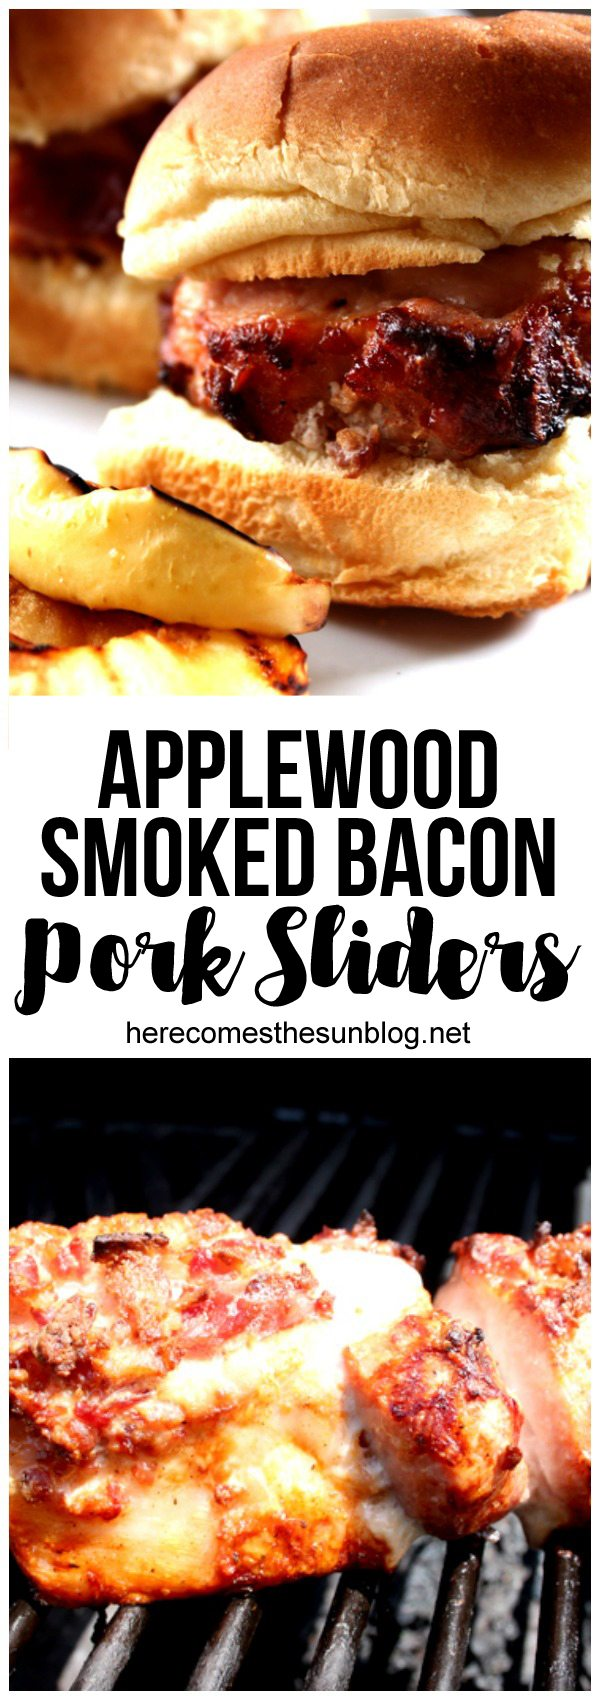 These applewood smoked bacon pork sliders make the perfect weeknight meal. They only take 30 minutes to cook!